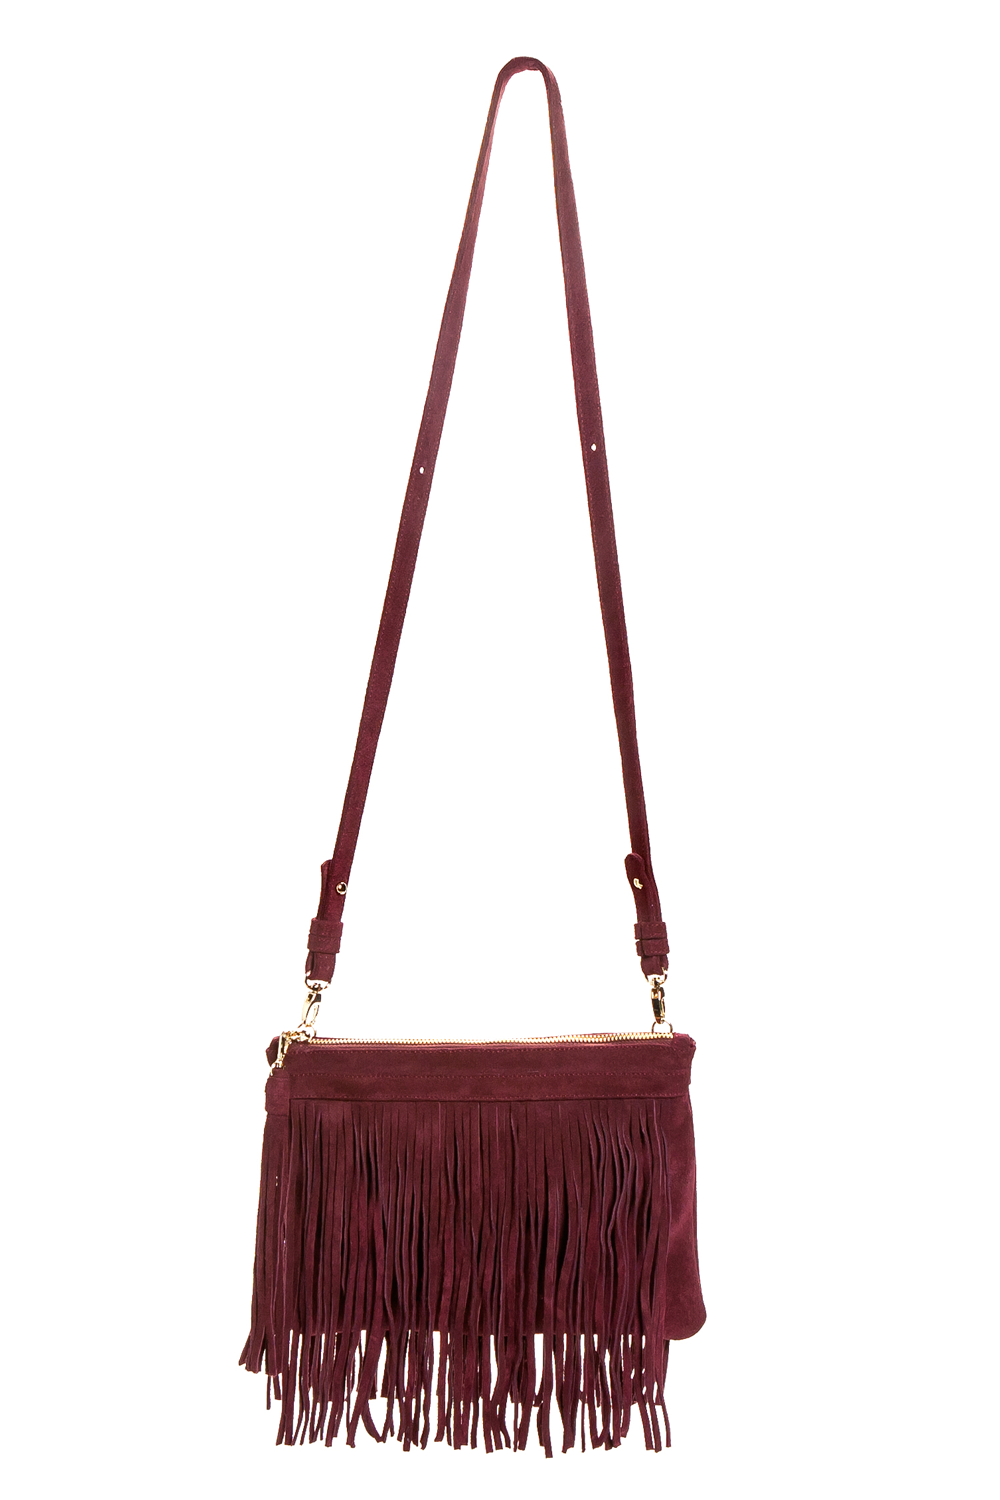 54e820573468b The Burgundy Suede Leather Fringed 'Mini Taylea' Bag